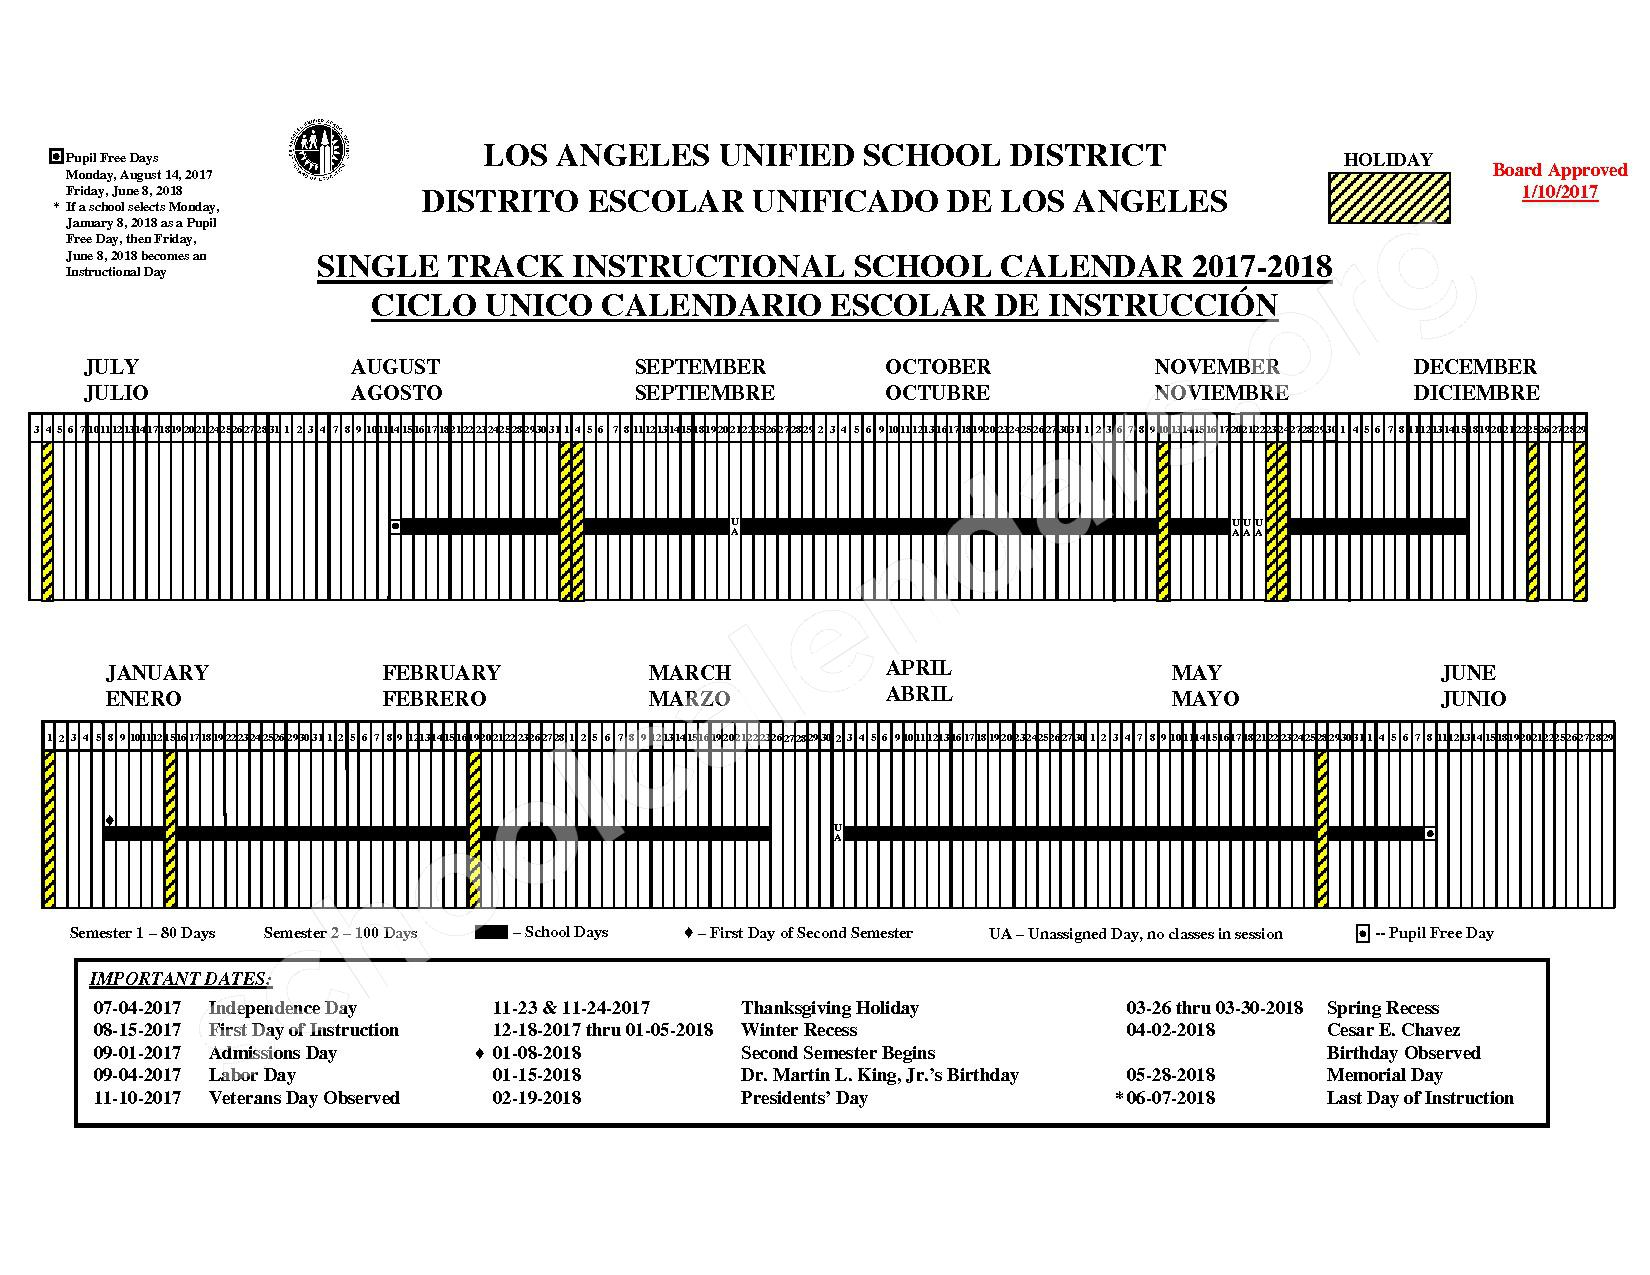 2017 - 2018 District Calendar – Los Angeles Unified School District (LAUSD) – page 1